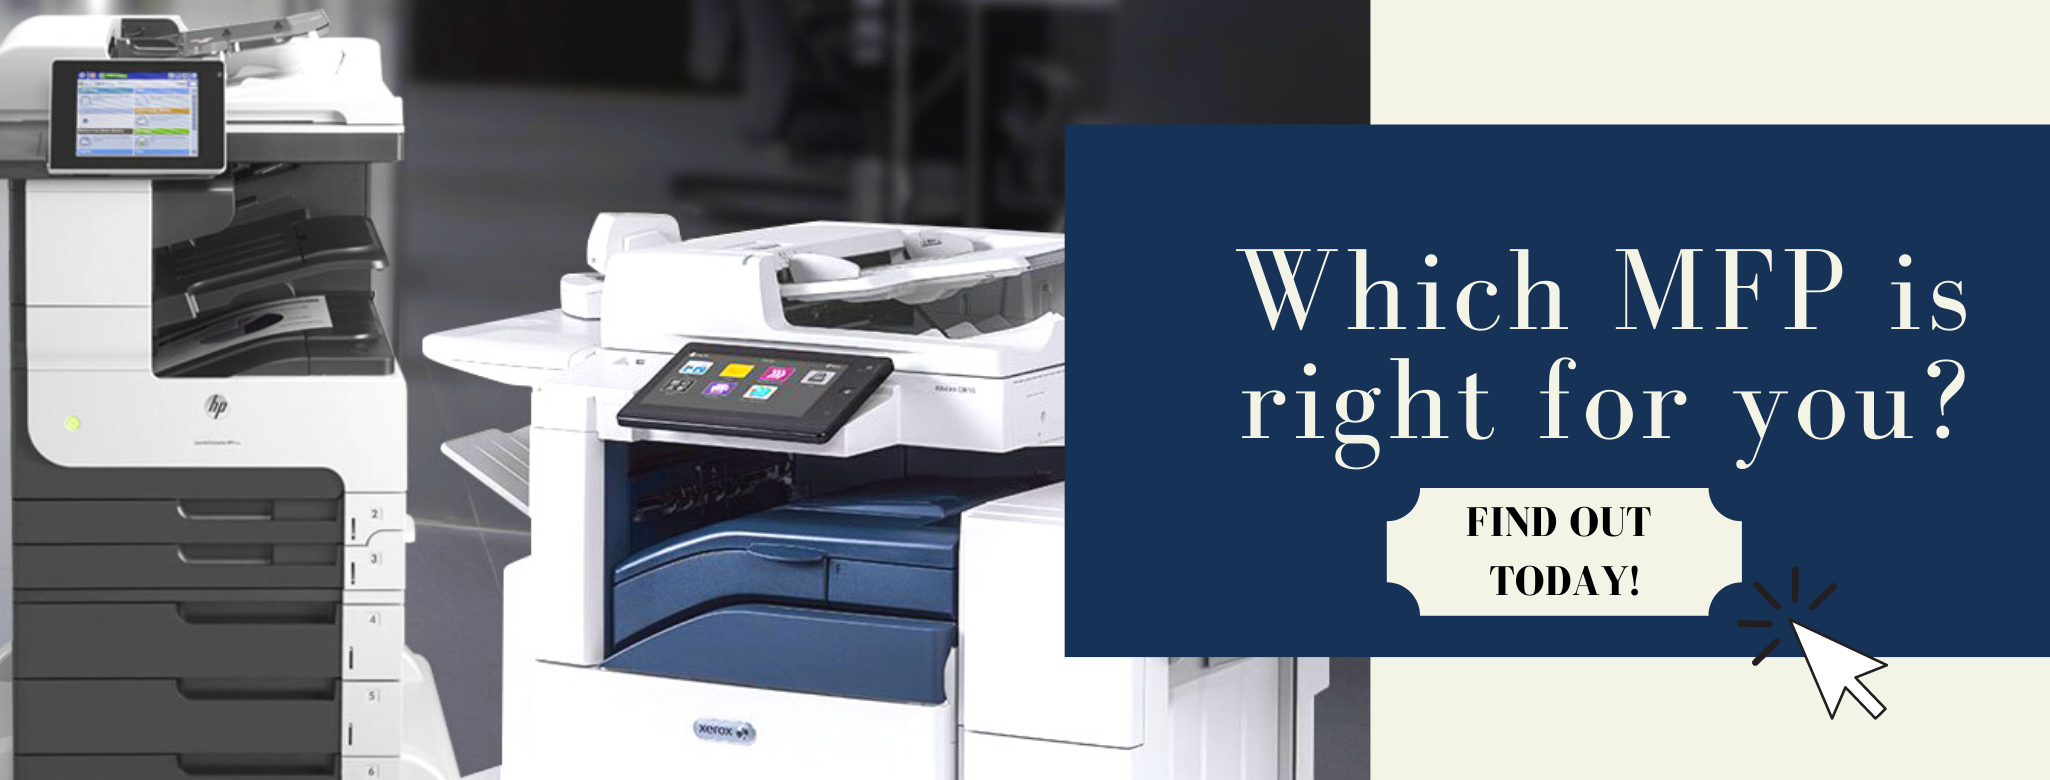 Infographic: Which MFP is right for you?